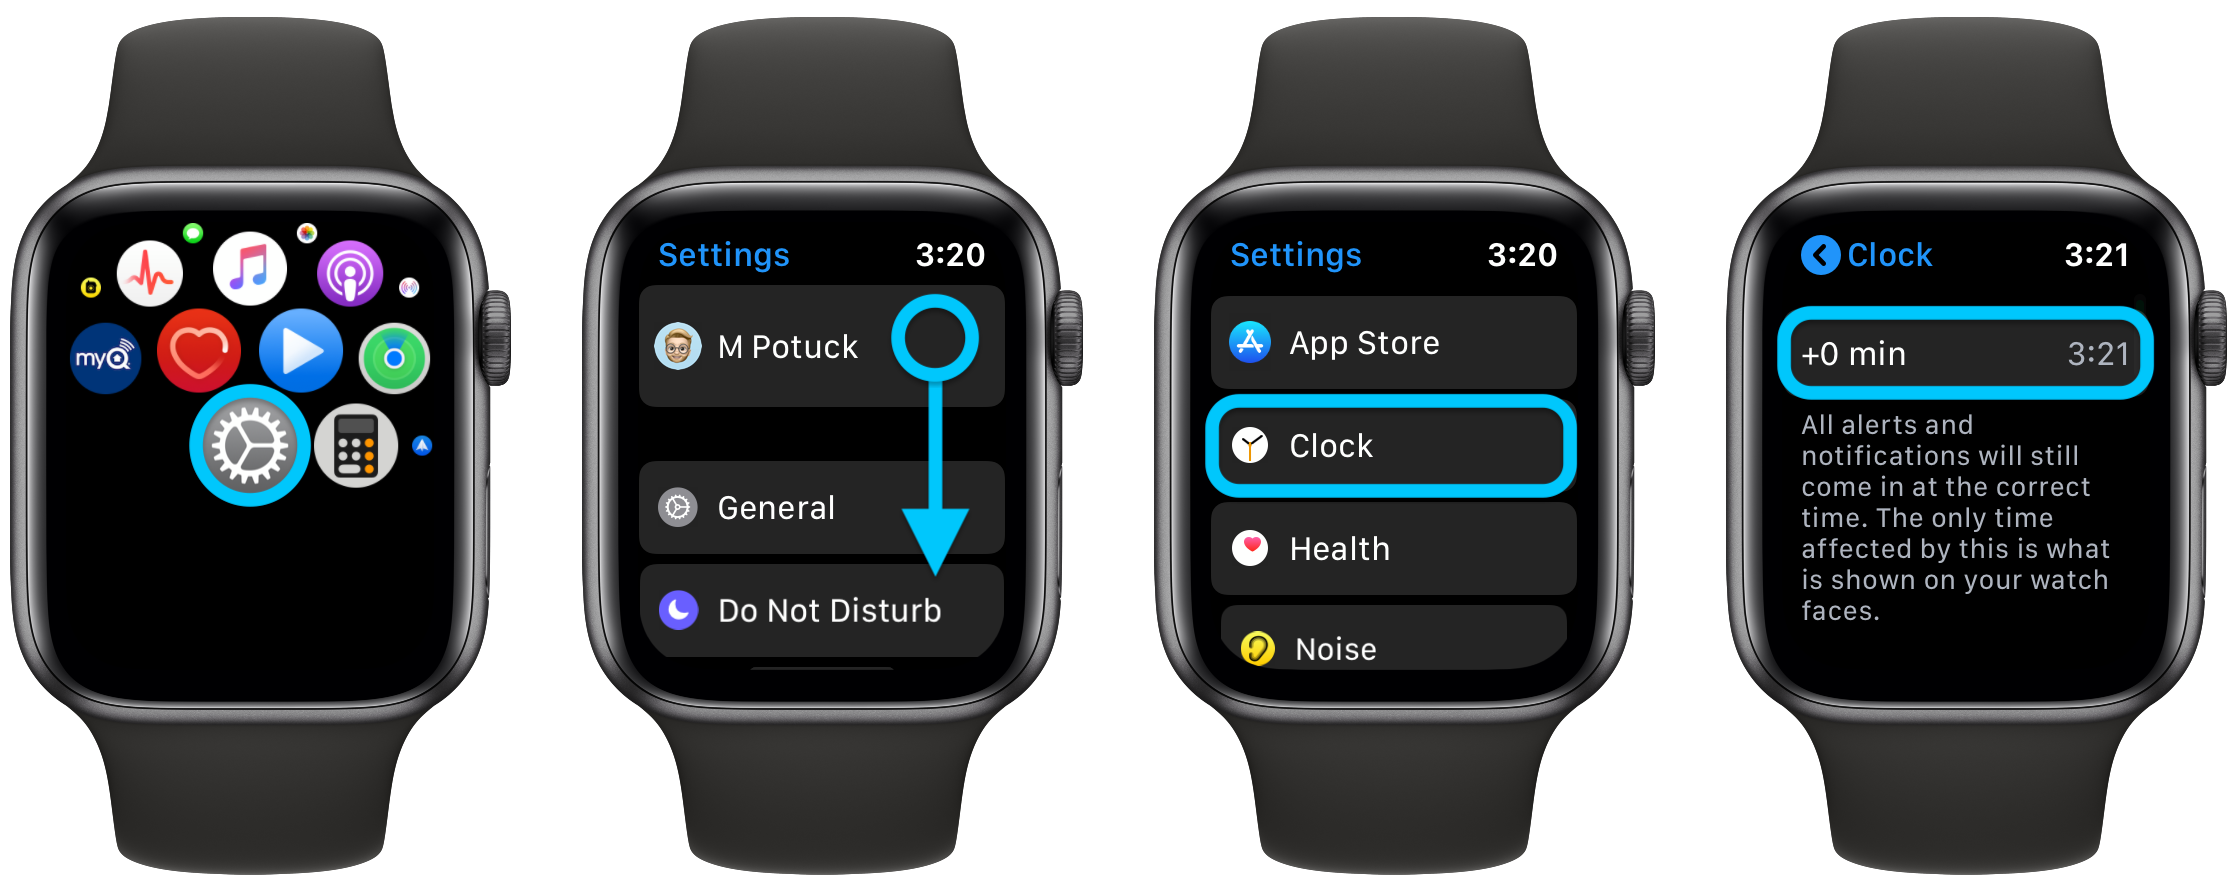 How to set Apple Watch ahead walkthrough 1